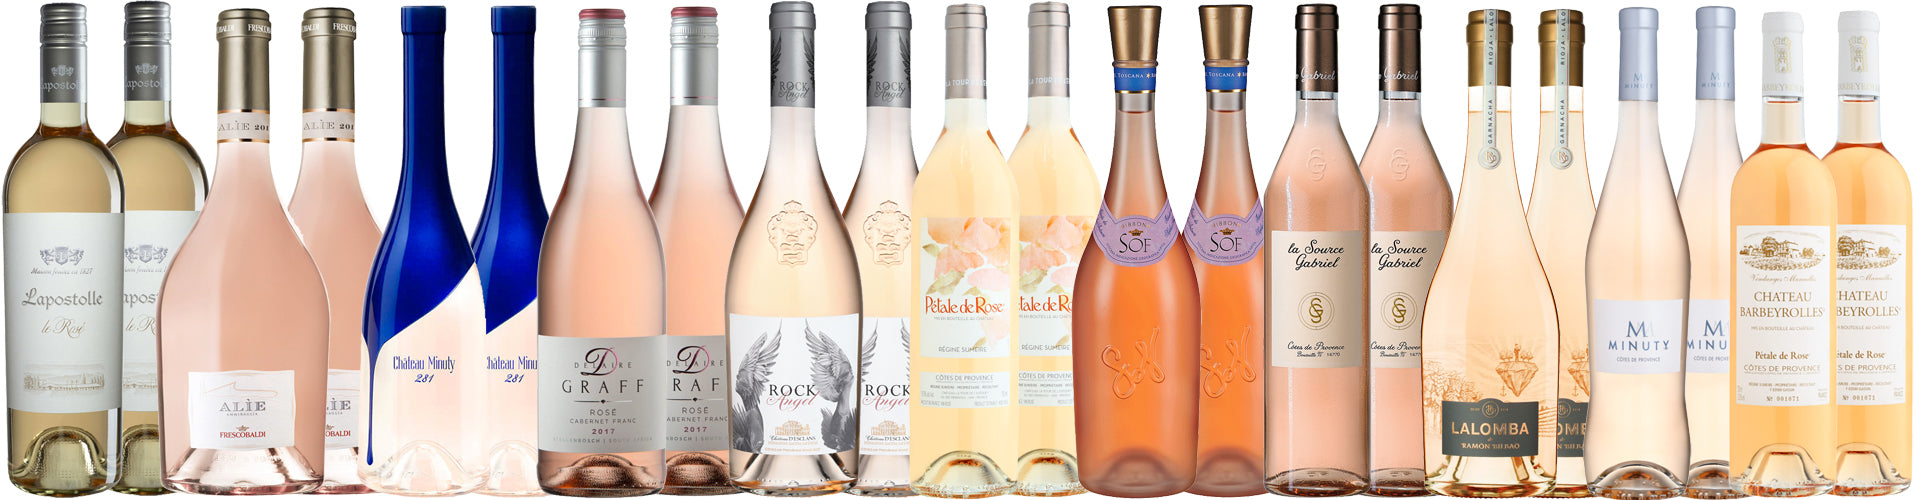 Assortment of Rosé wine bottles